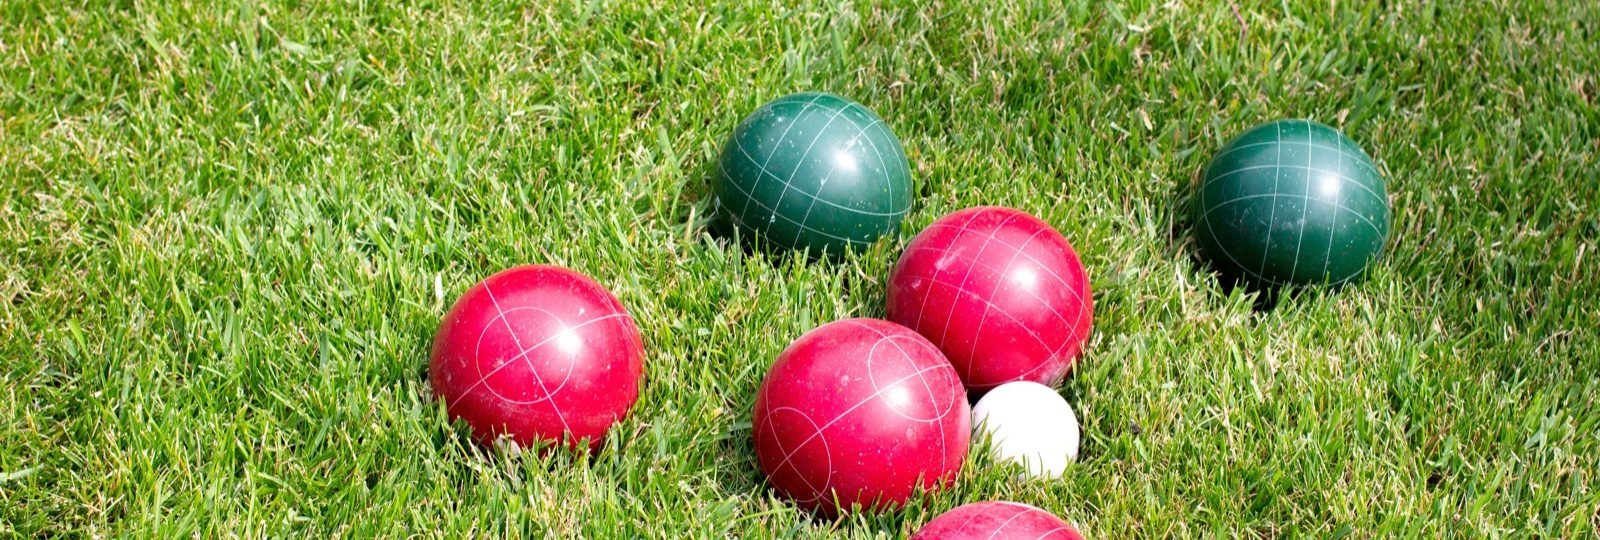 Red and green bocce balls lying in the grass.